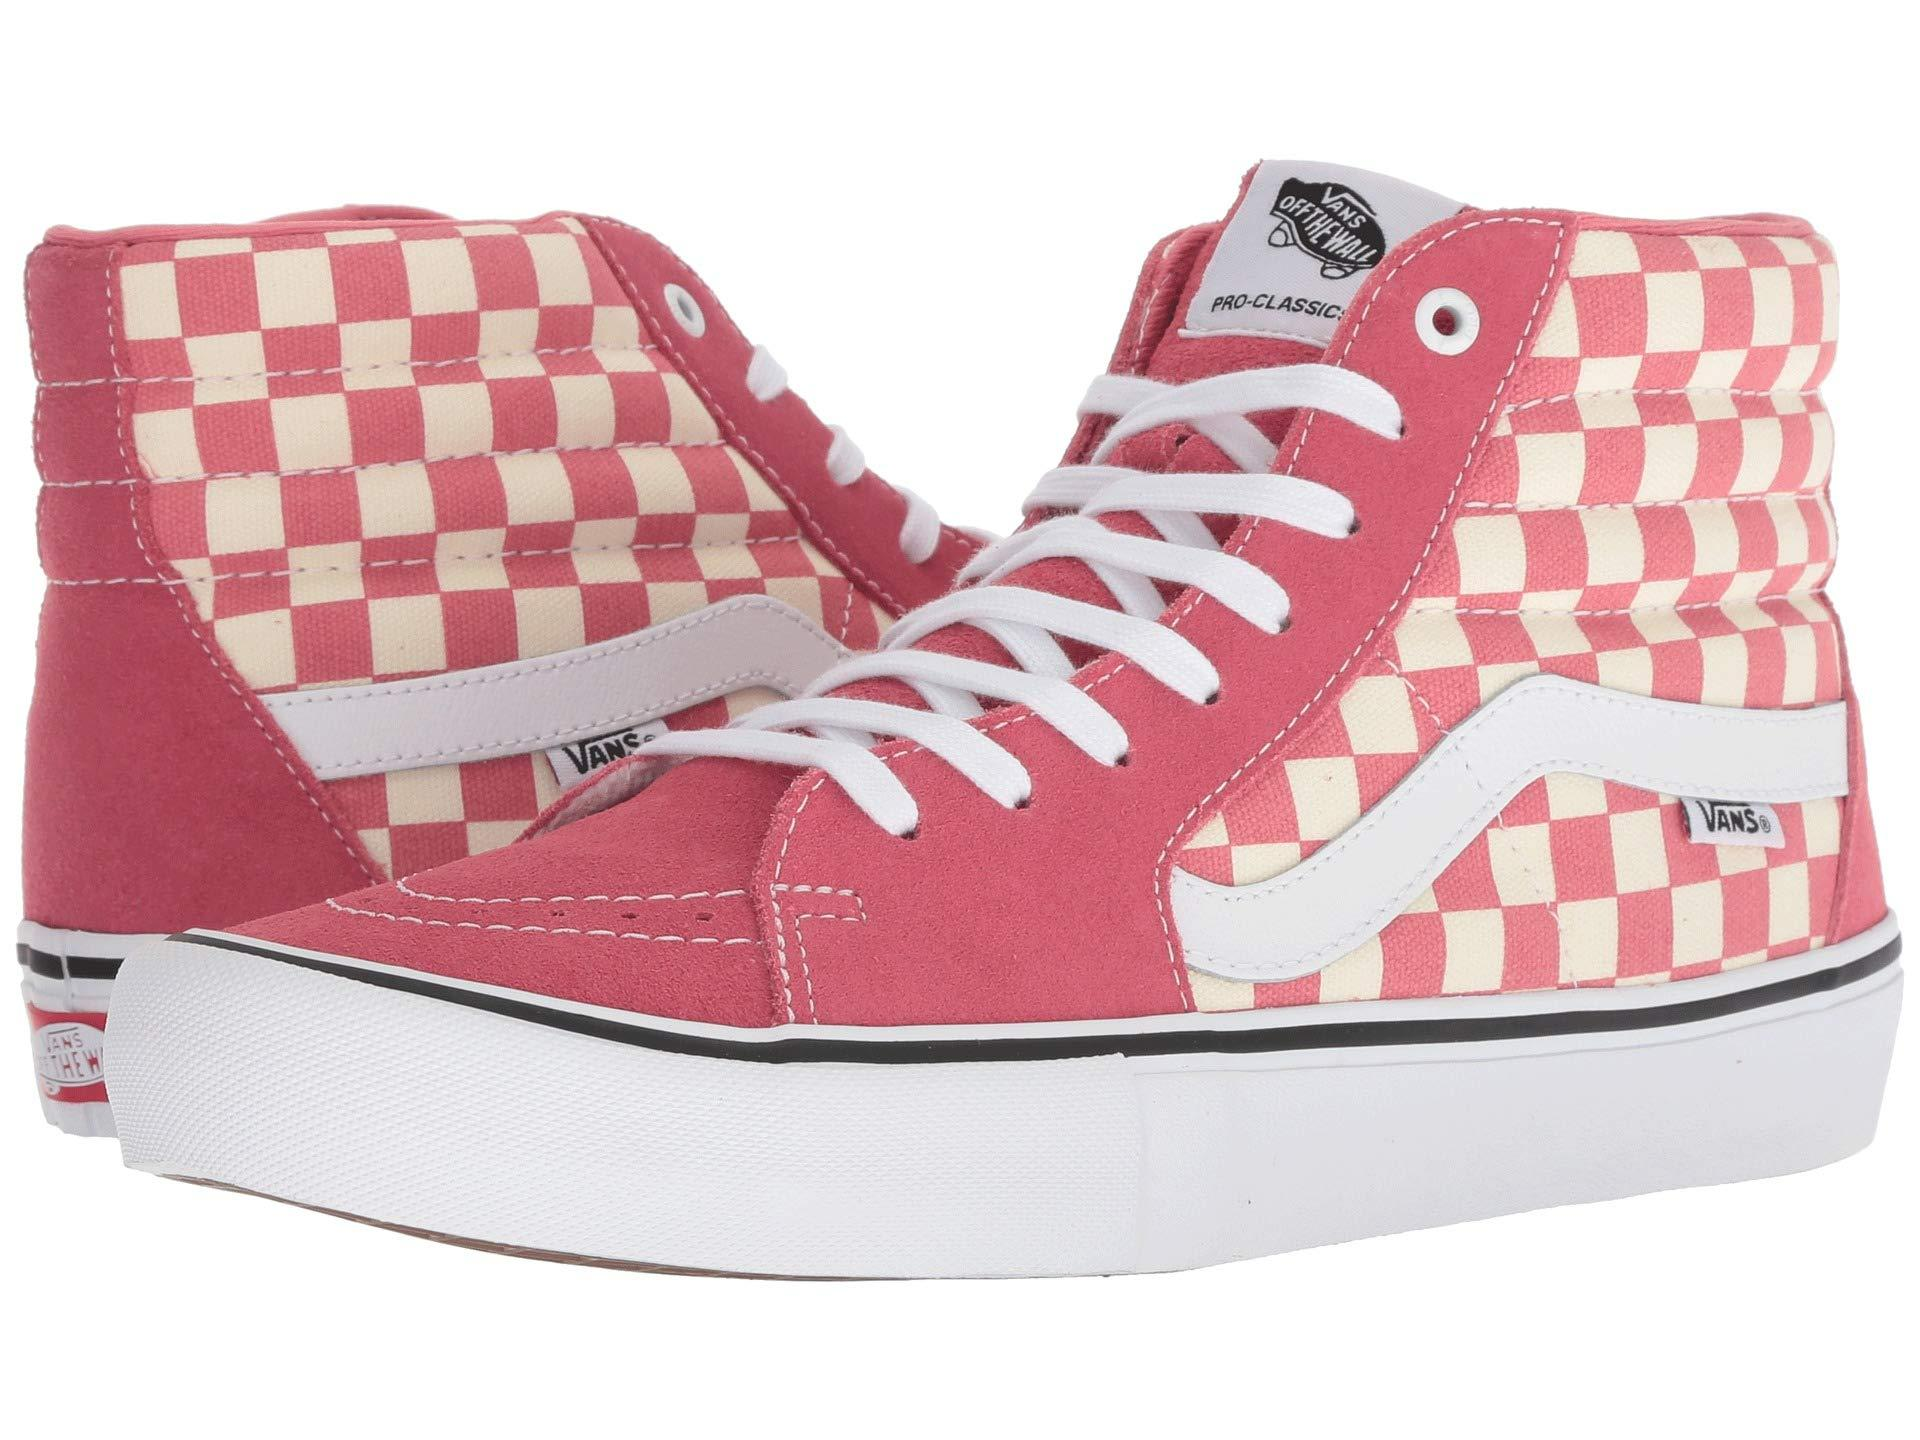 4c857ed010 Vans - Pink Sk8-hitm Pro for Men - Lyst. View fullscreen